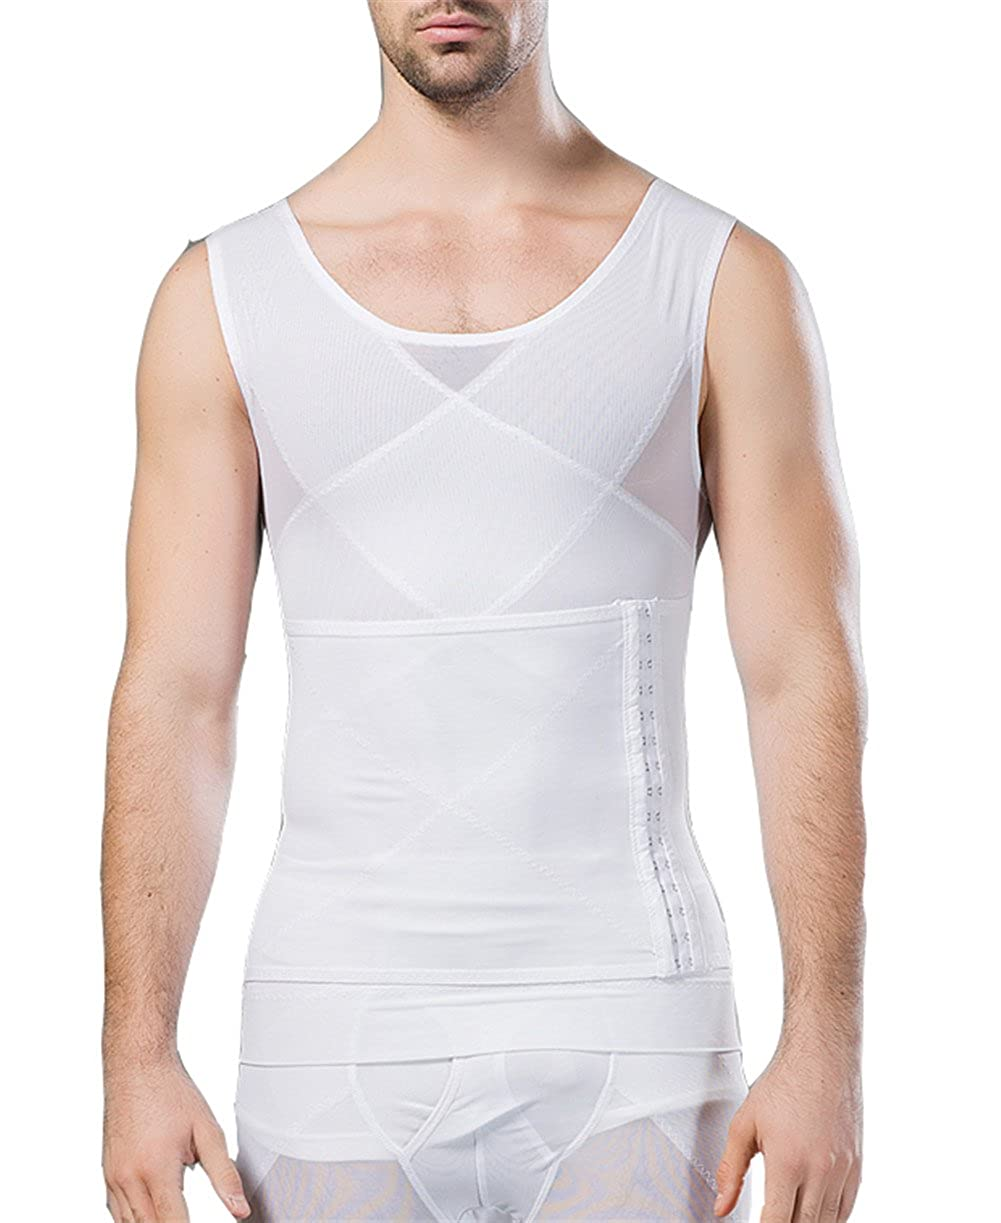 Breathable Gynecomastia Compression Hide Man Moobs Clasp Chest Binders Tank Tops